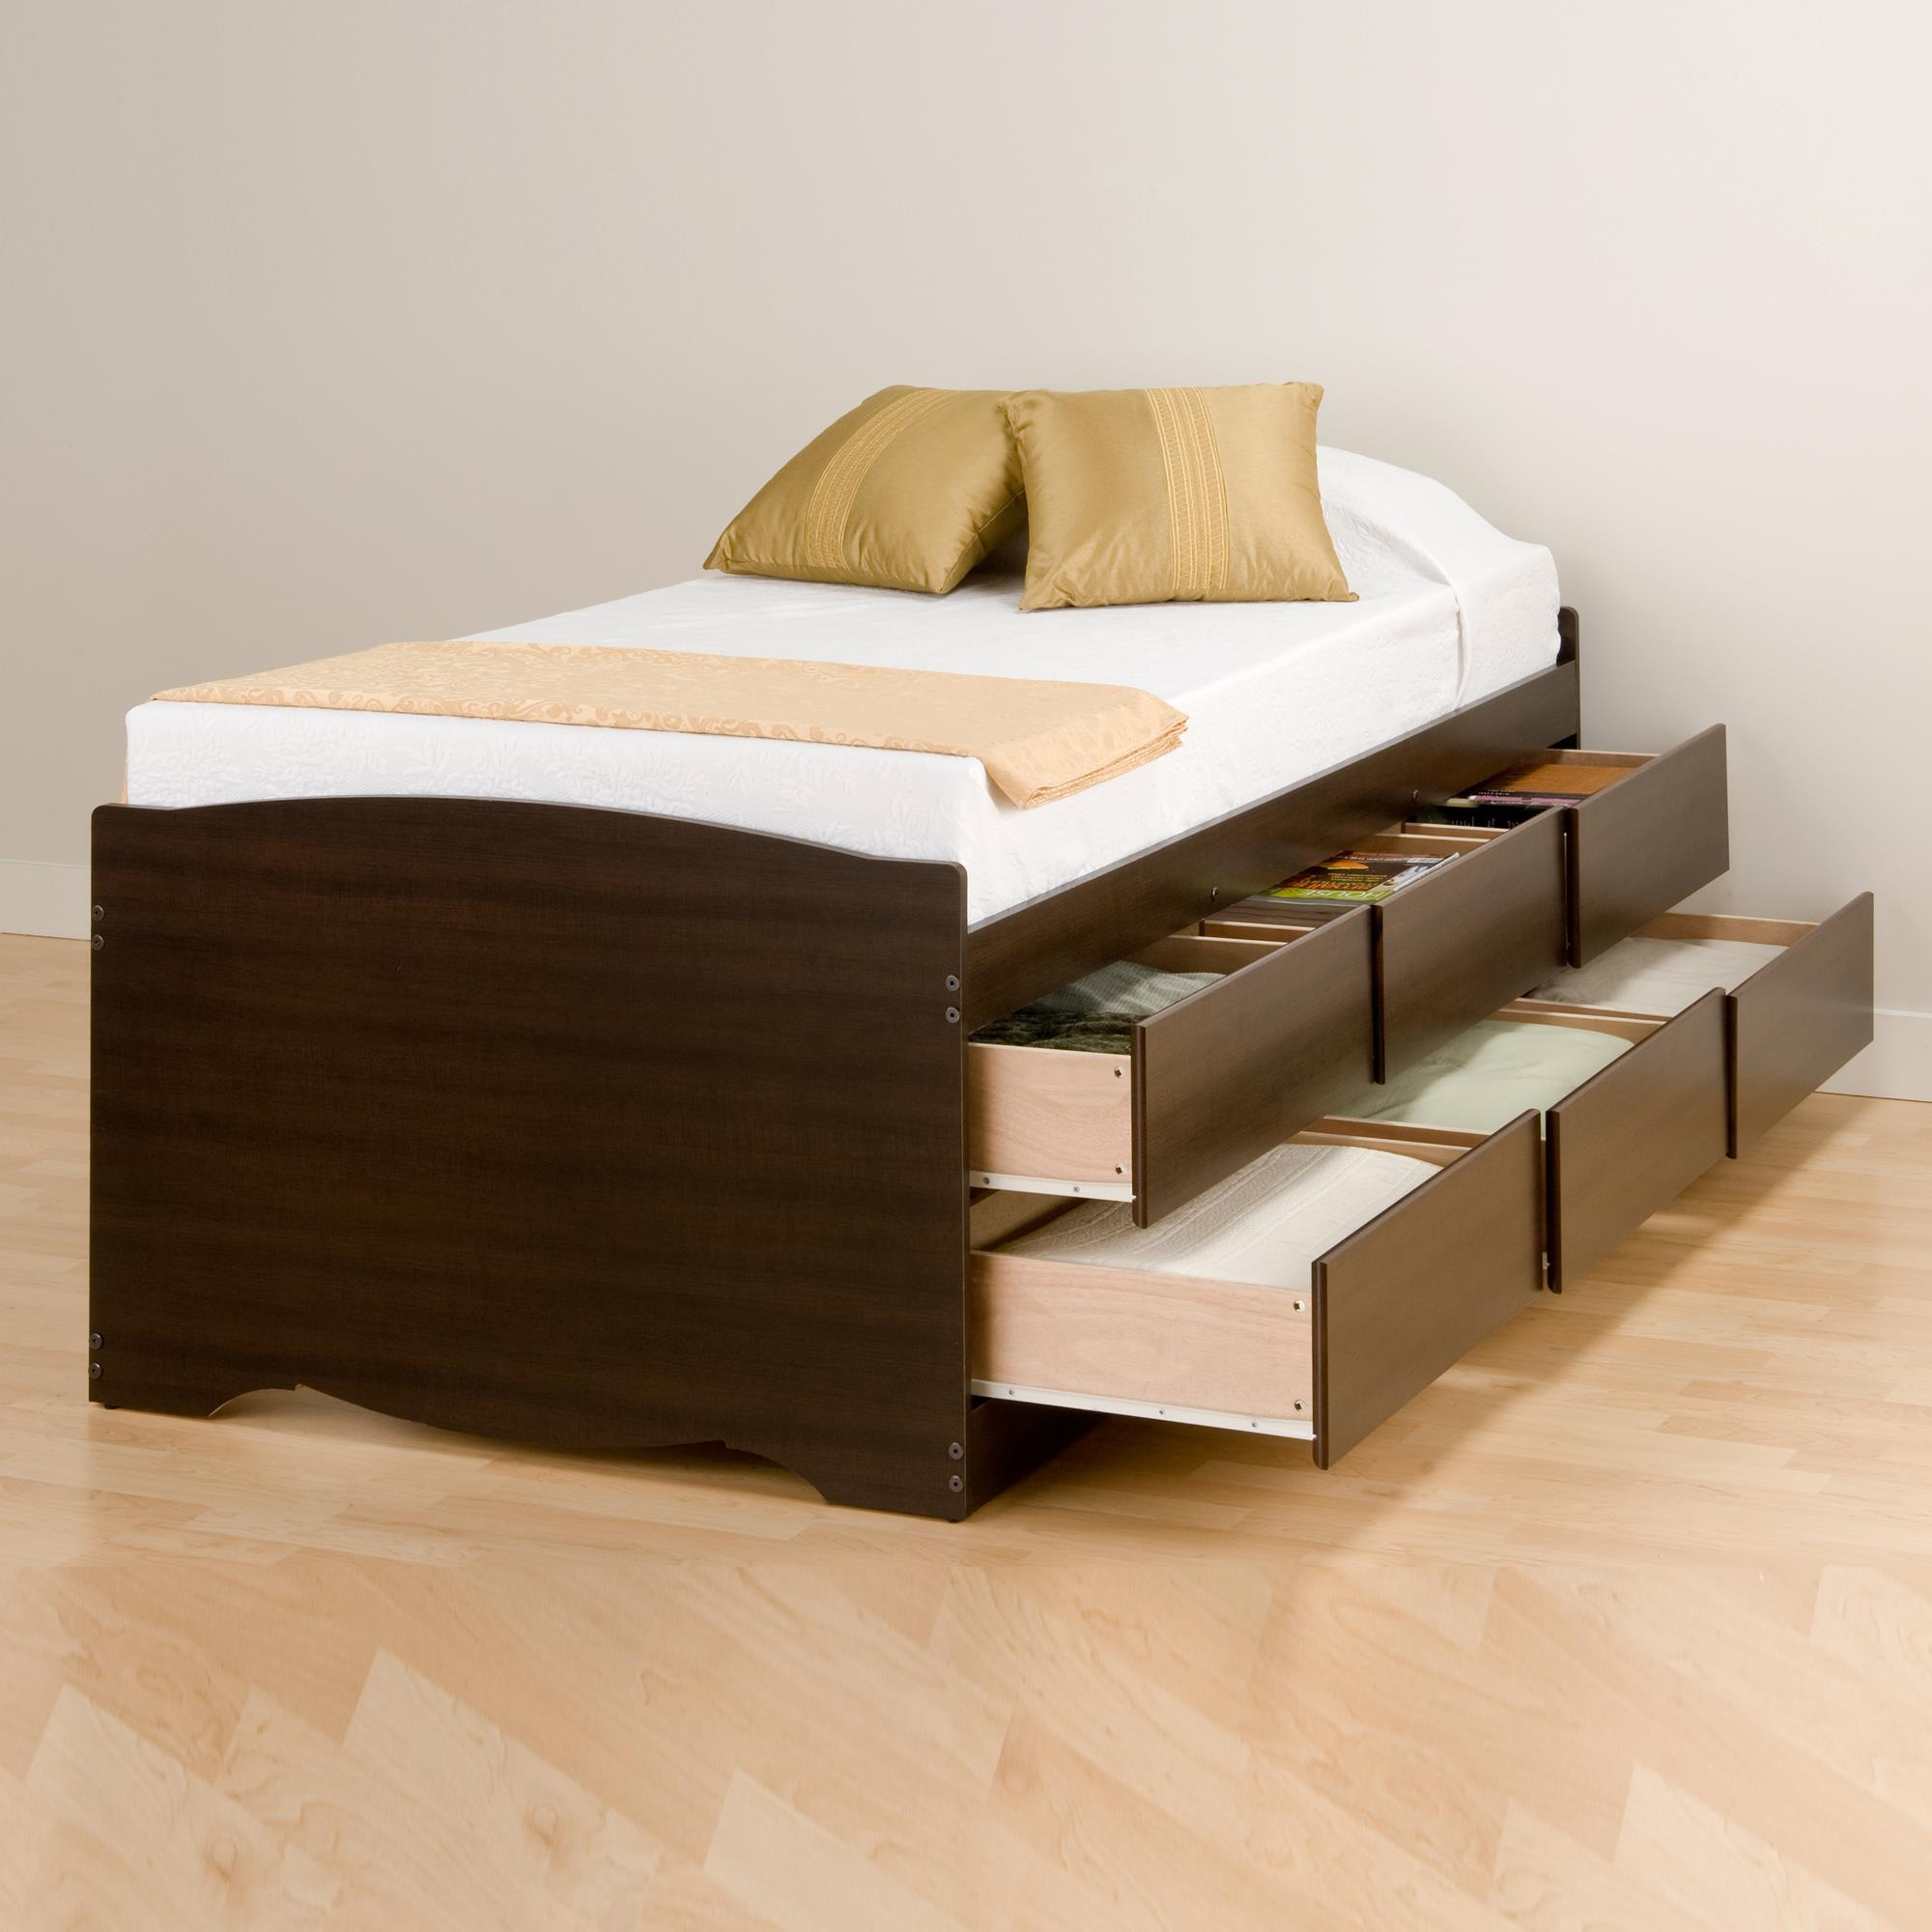 Prepac Twin 6 Drawer Tall Platform Storage Bed By Oj